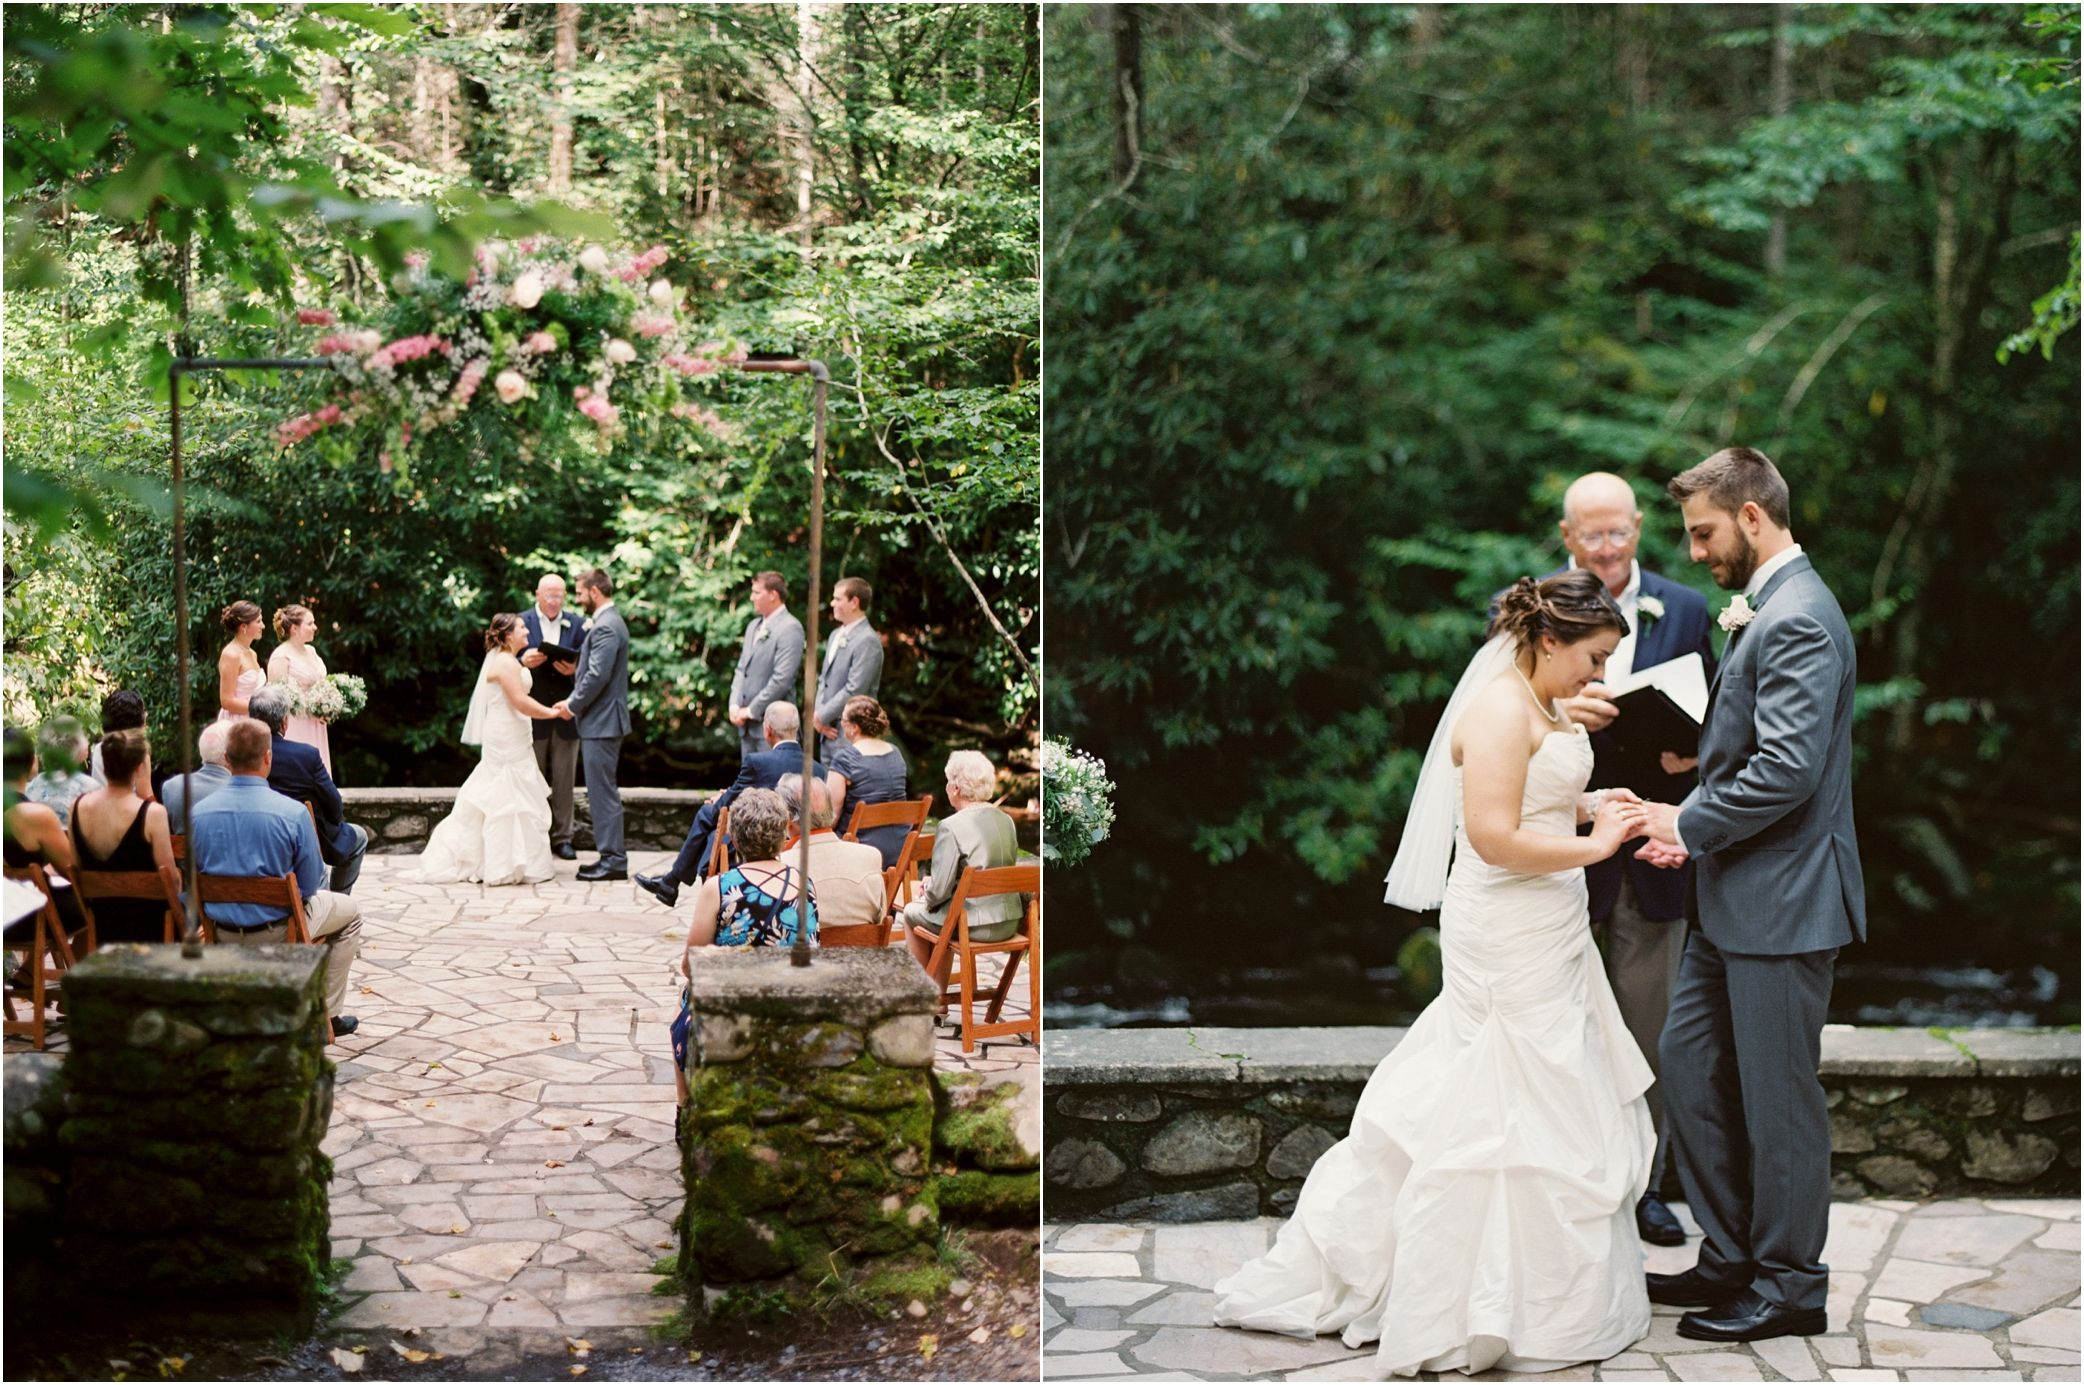 Mountain Wedding At Spence Cabin In The Great Smoky Mountains Click To View More